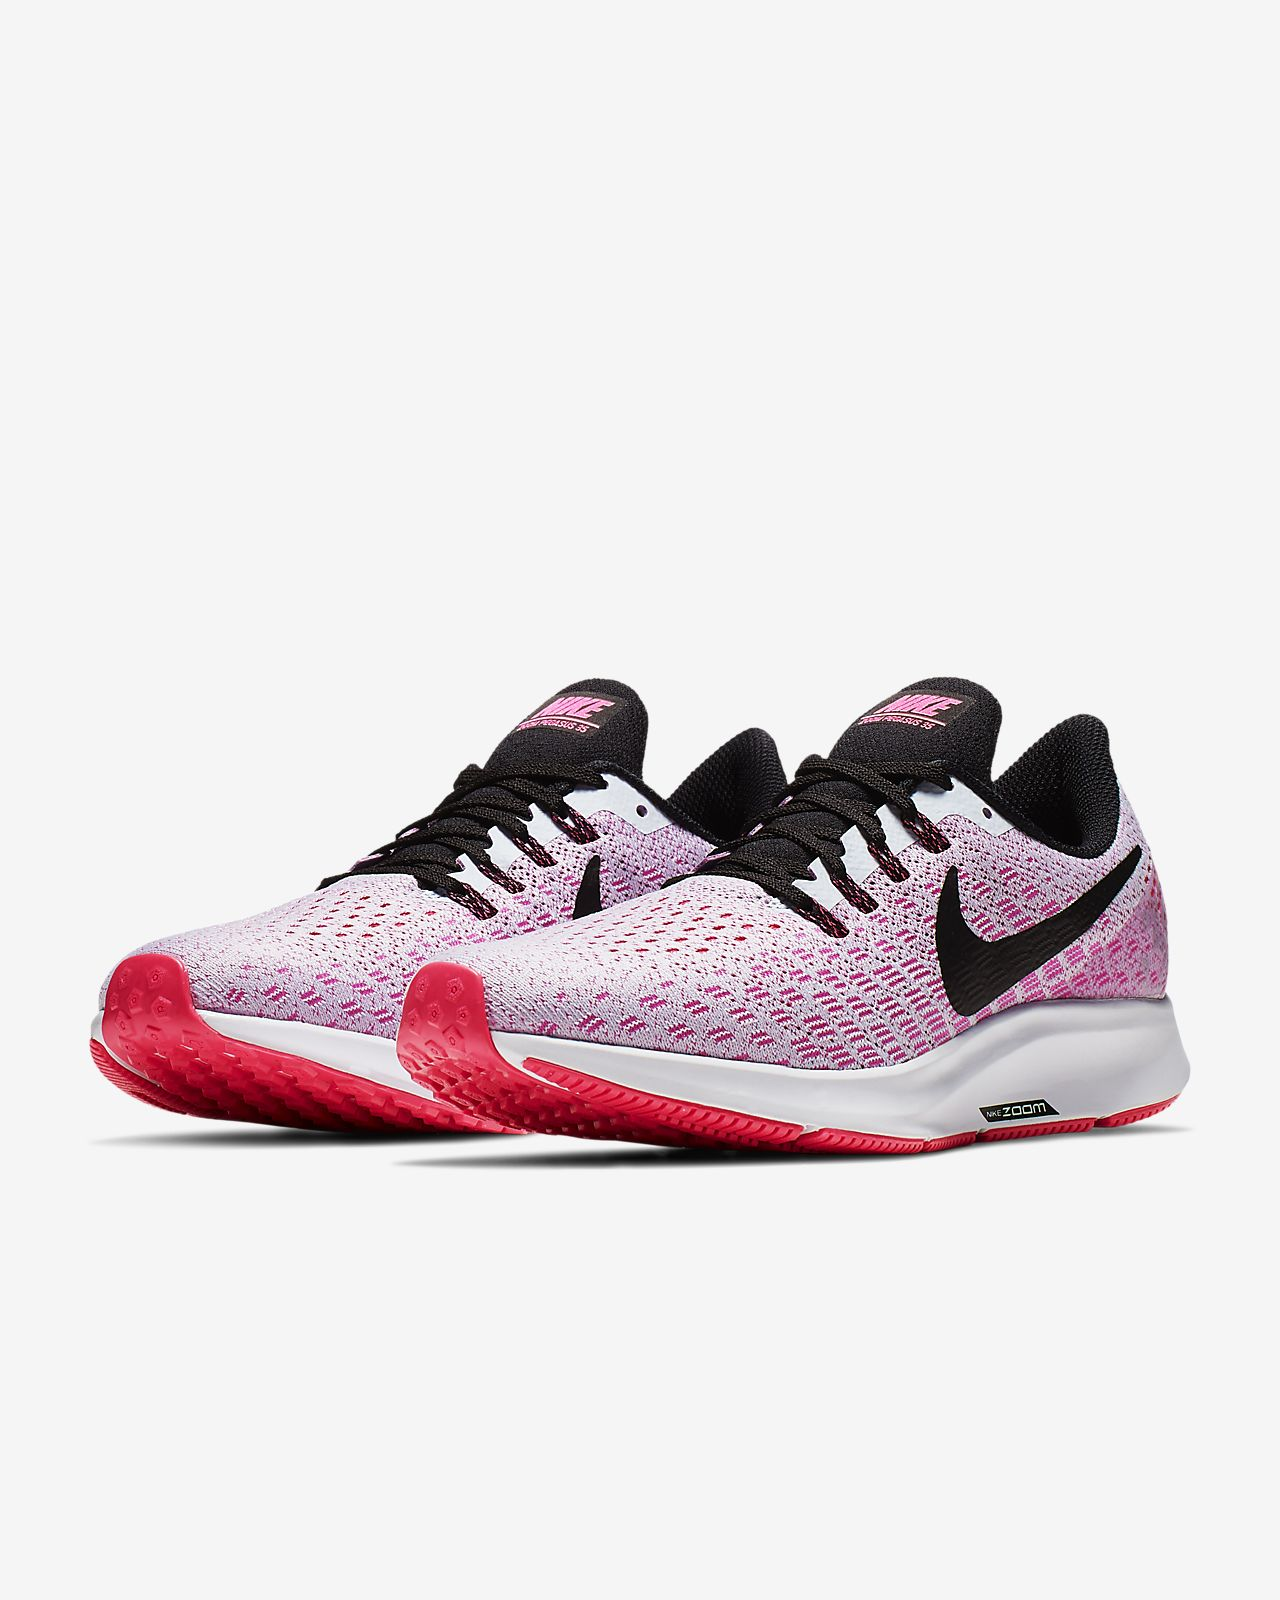 295a1b2876db6 Nike Air Zoom Pegasus 35 Women s Running Shoe. Nike.com